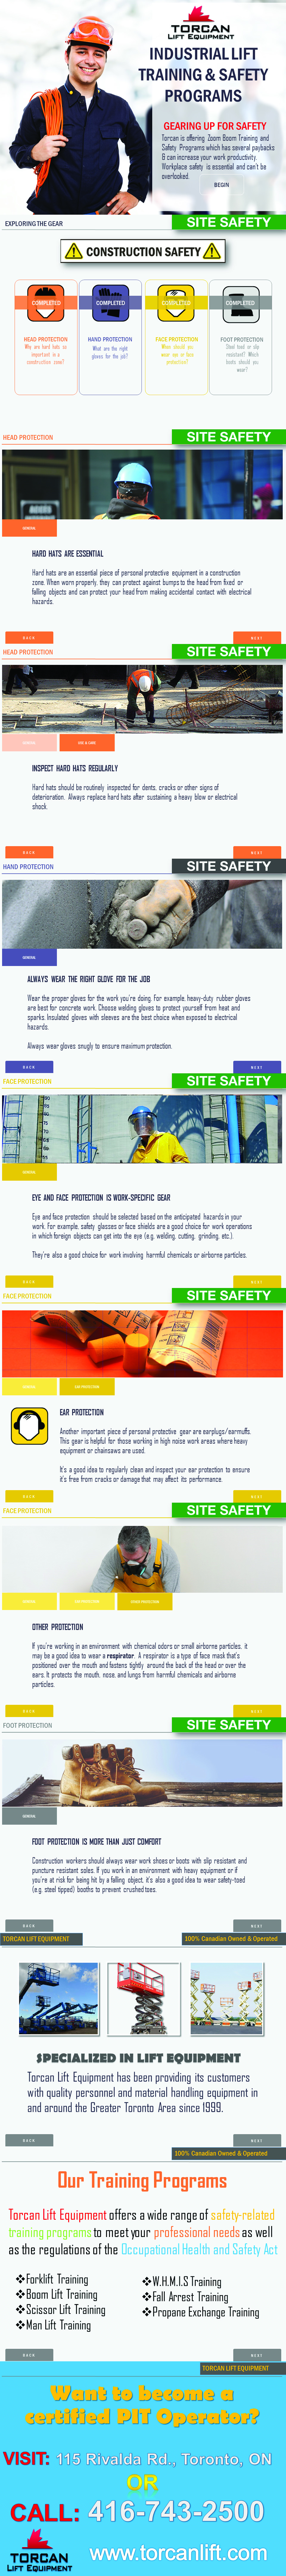 INDUSTRIAL LIFT TRAINING & SAFETY PROGRAMS INFOGRAPHIC